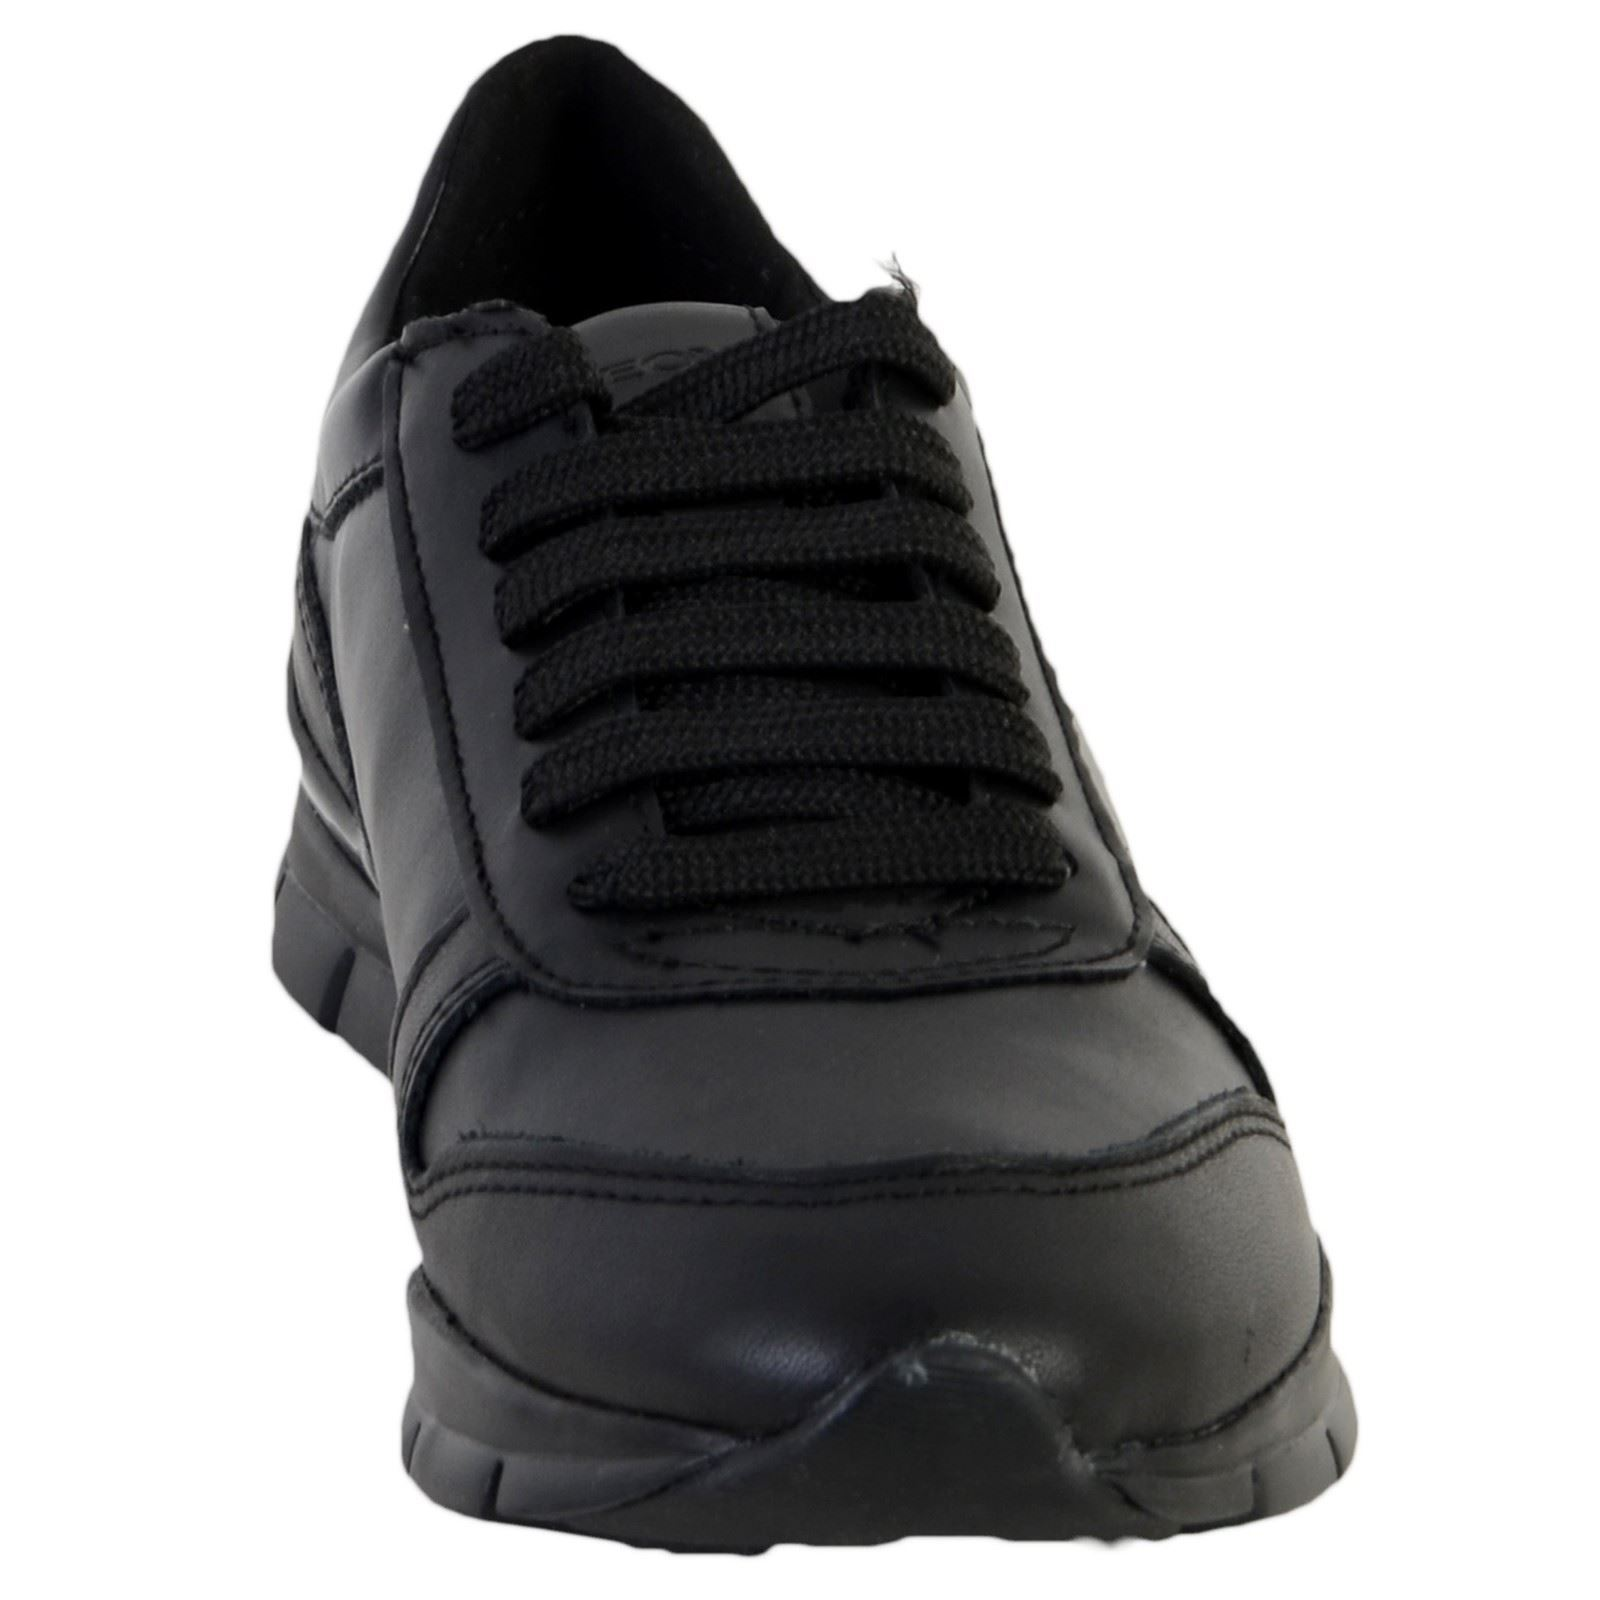 Rubí Inadecuado Son  Geox D sukie c - Baskets basses - noir | BrandAlley